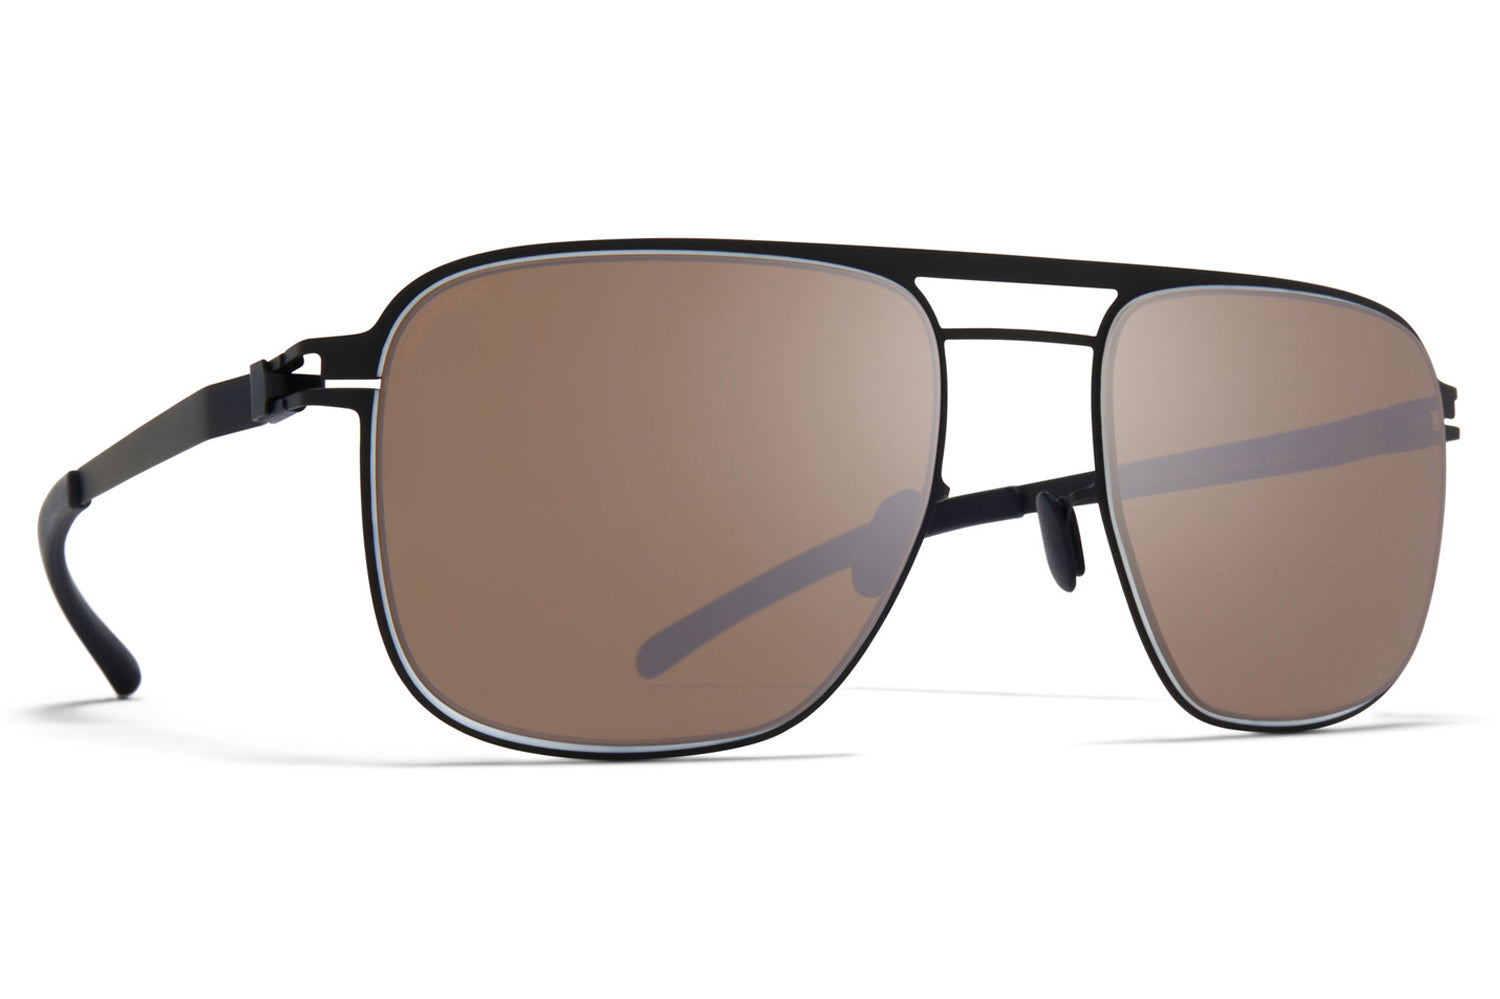 MYKITA - Eli Sunglasses Black/White with Polarized Pro Hi-Con Brown Lenses